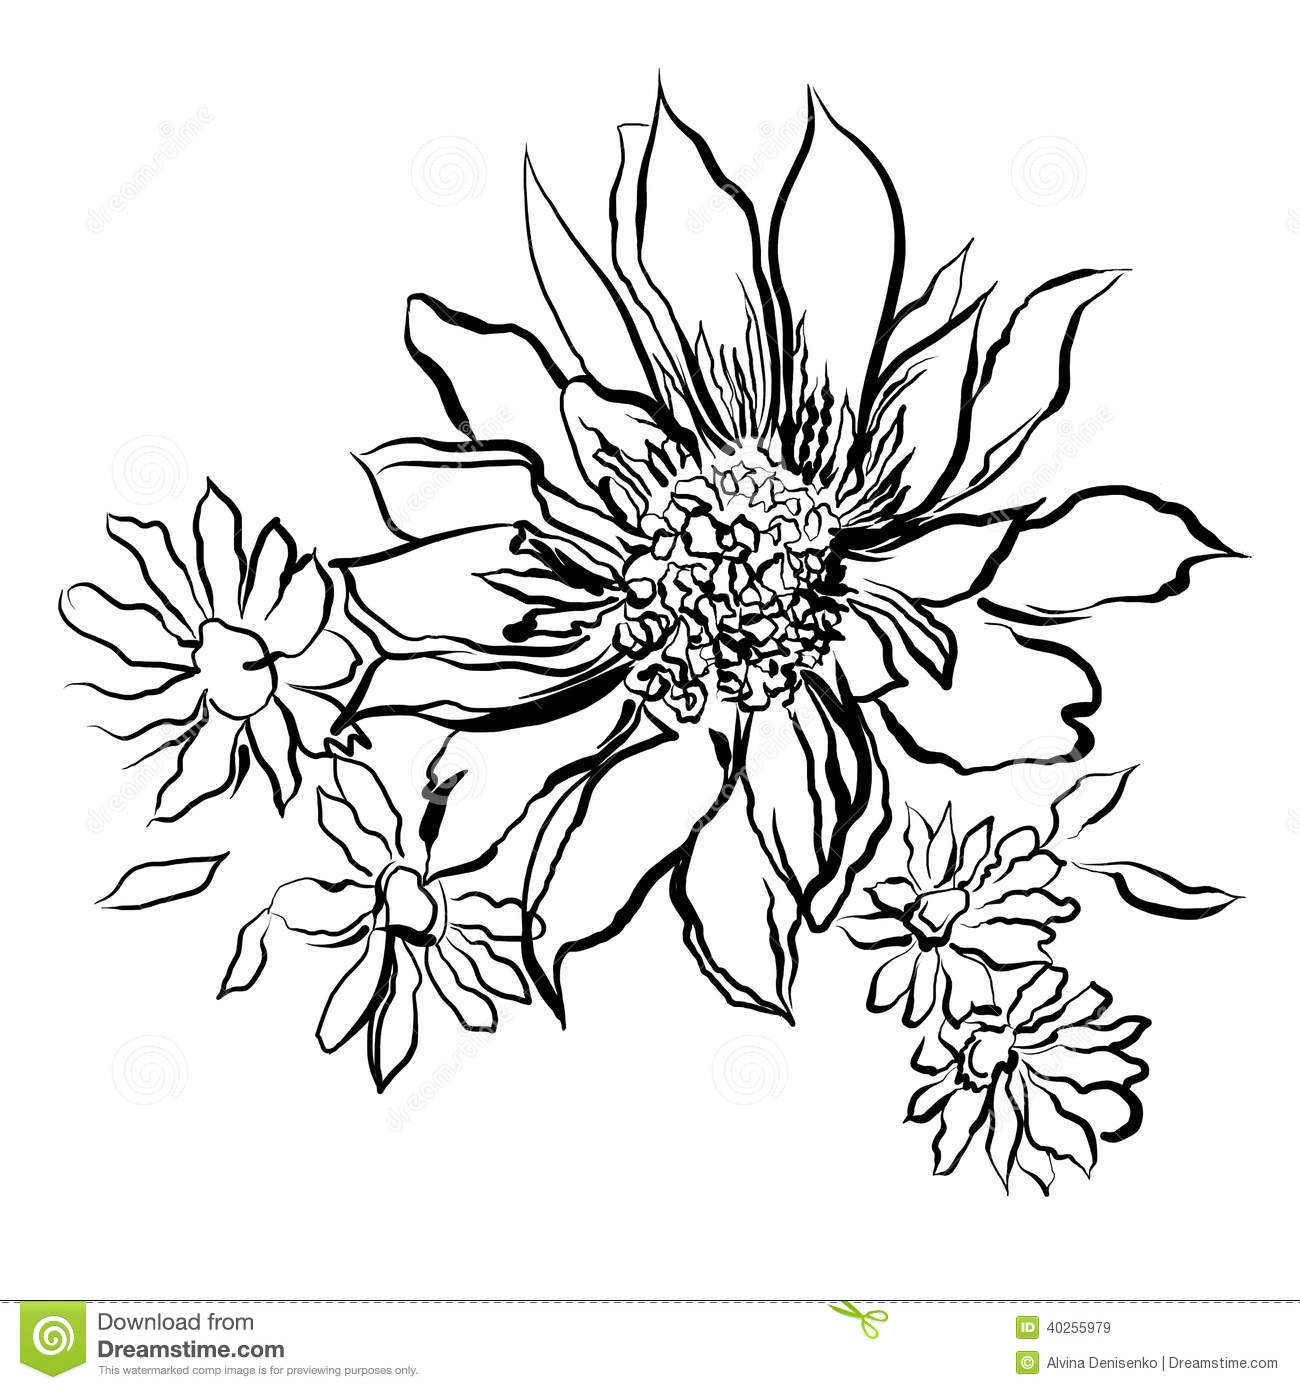 Flowers painted black outline on the white background Coloring book watercolor